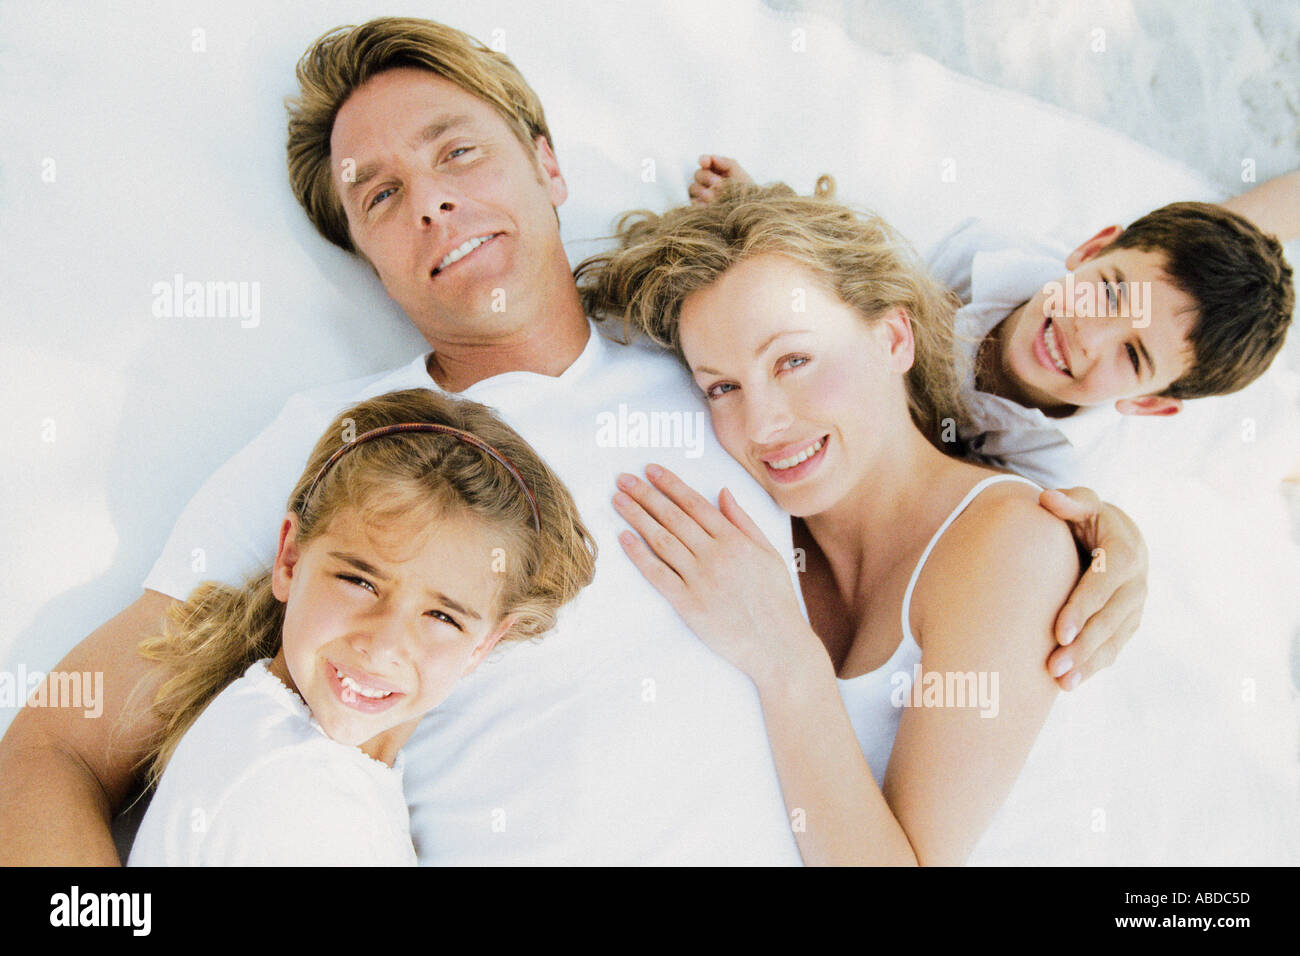 Family lying down - Stock Image